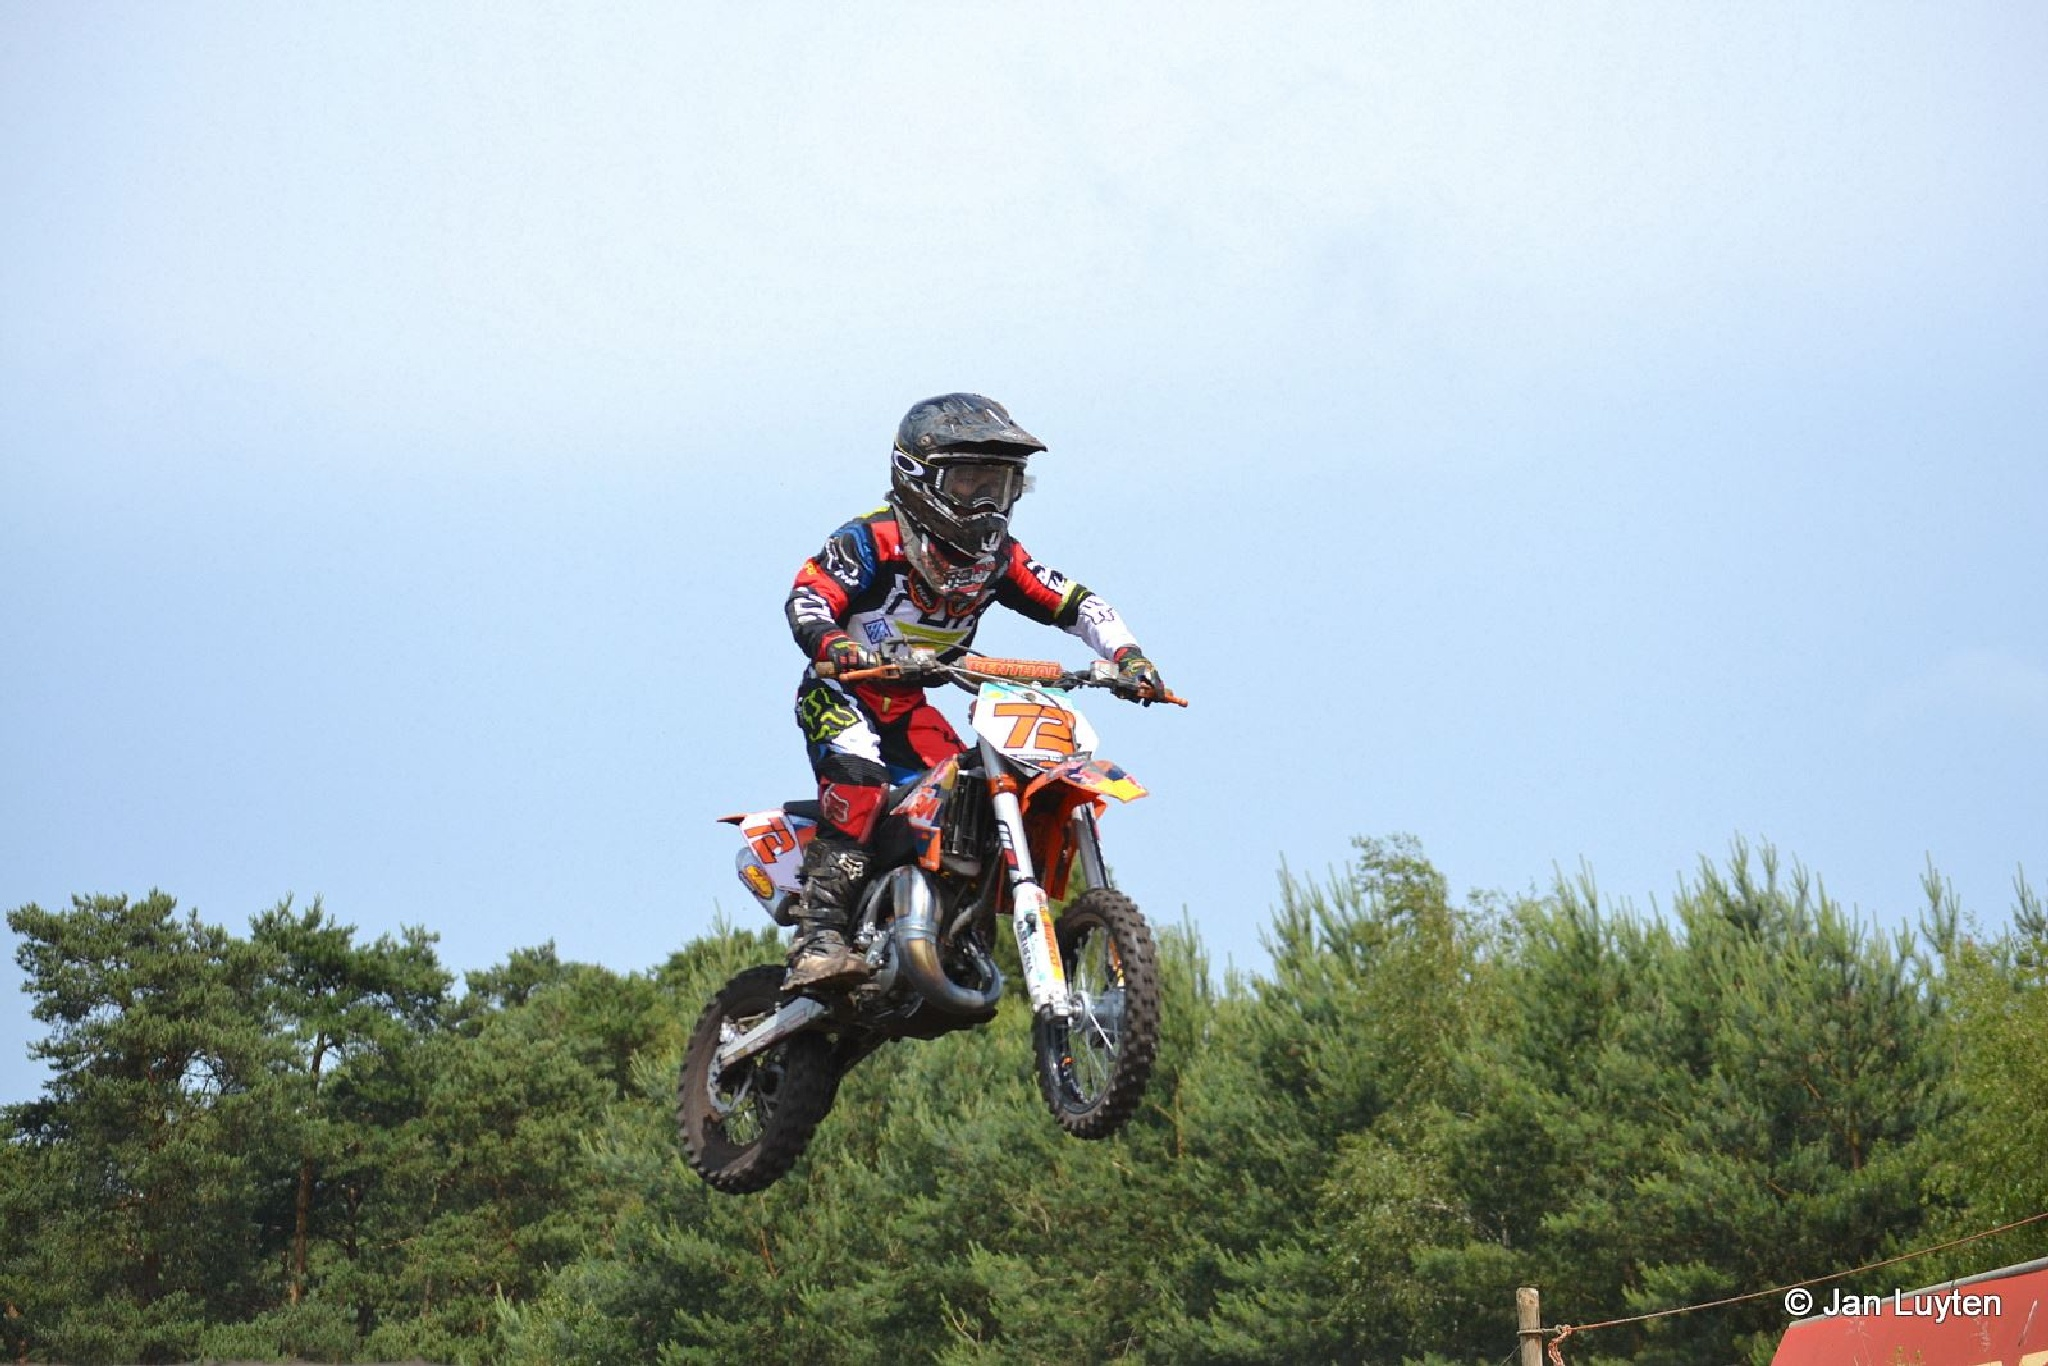 Liam Everts by Jan Luyten